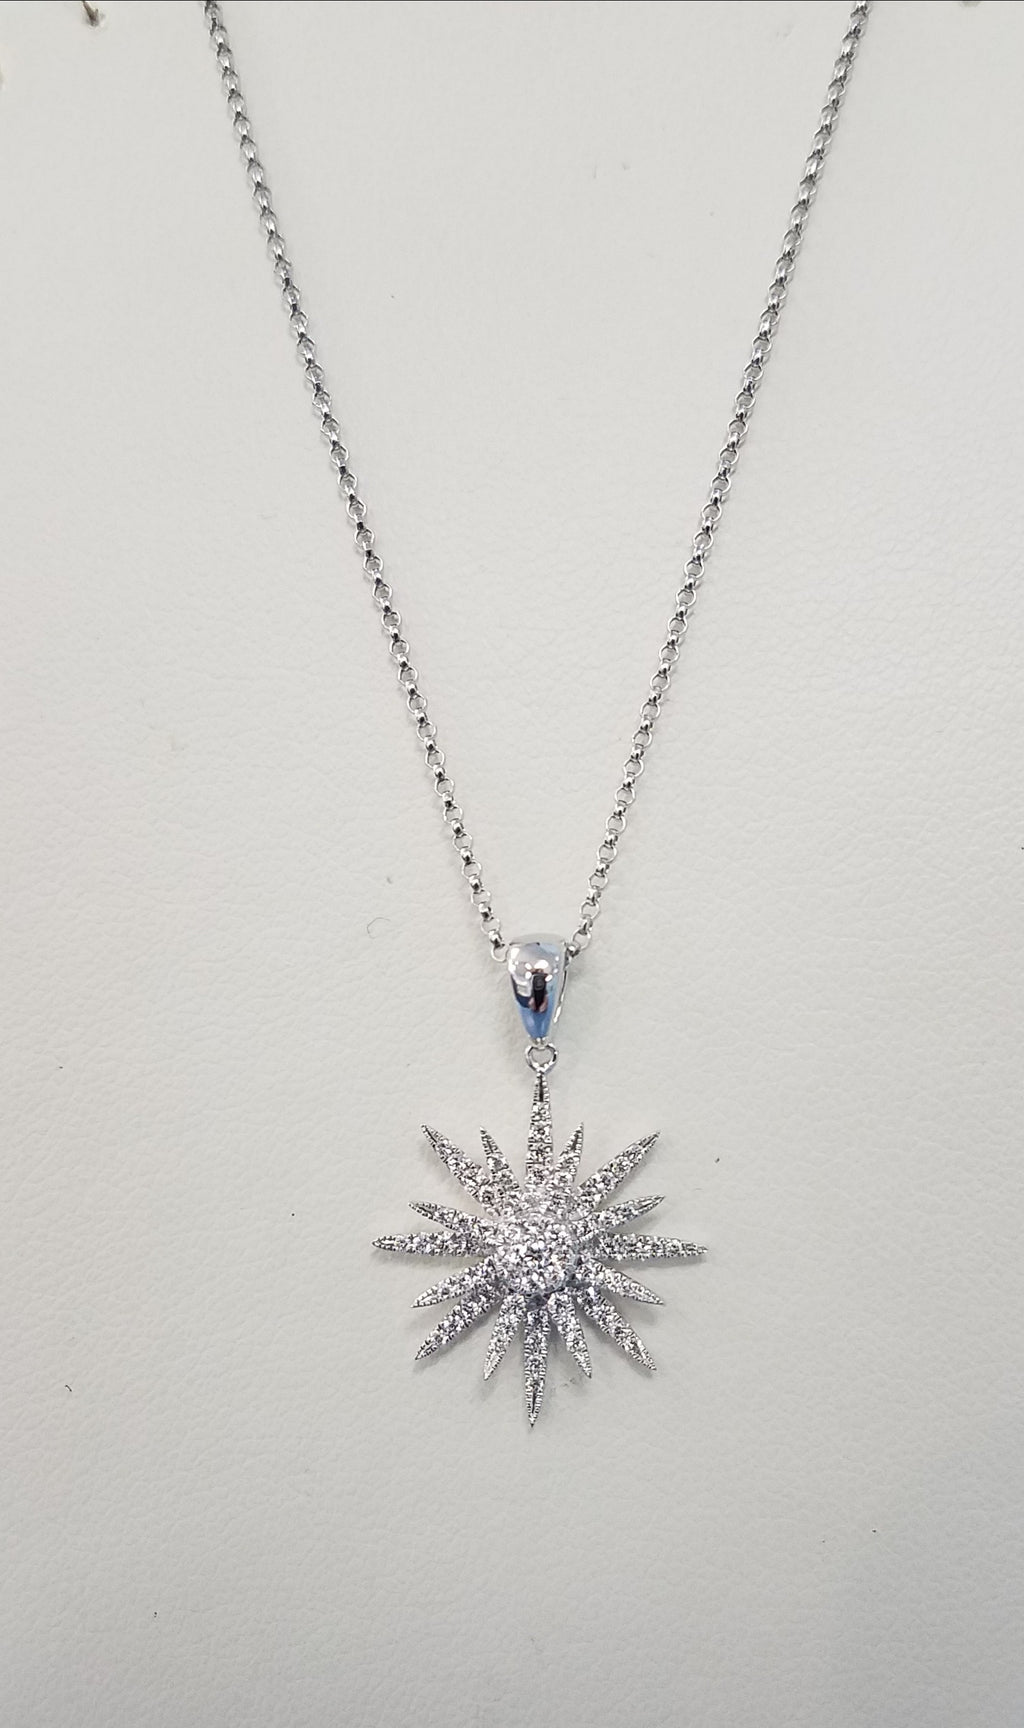 WALLACH JEWELRY DESIGNS Cherie Dori Diamond Snowflake Pendant Necklace